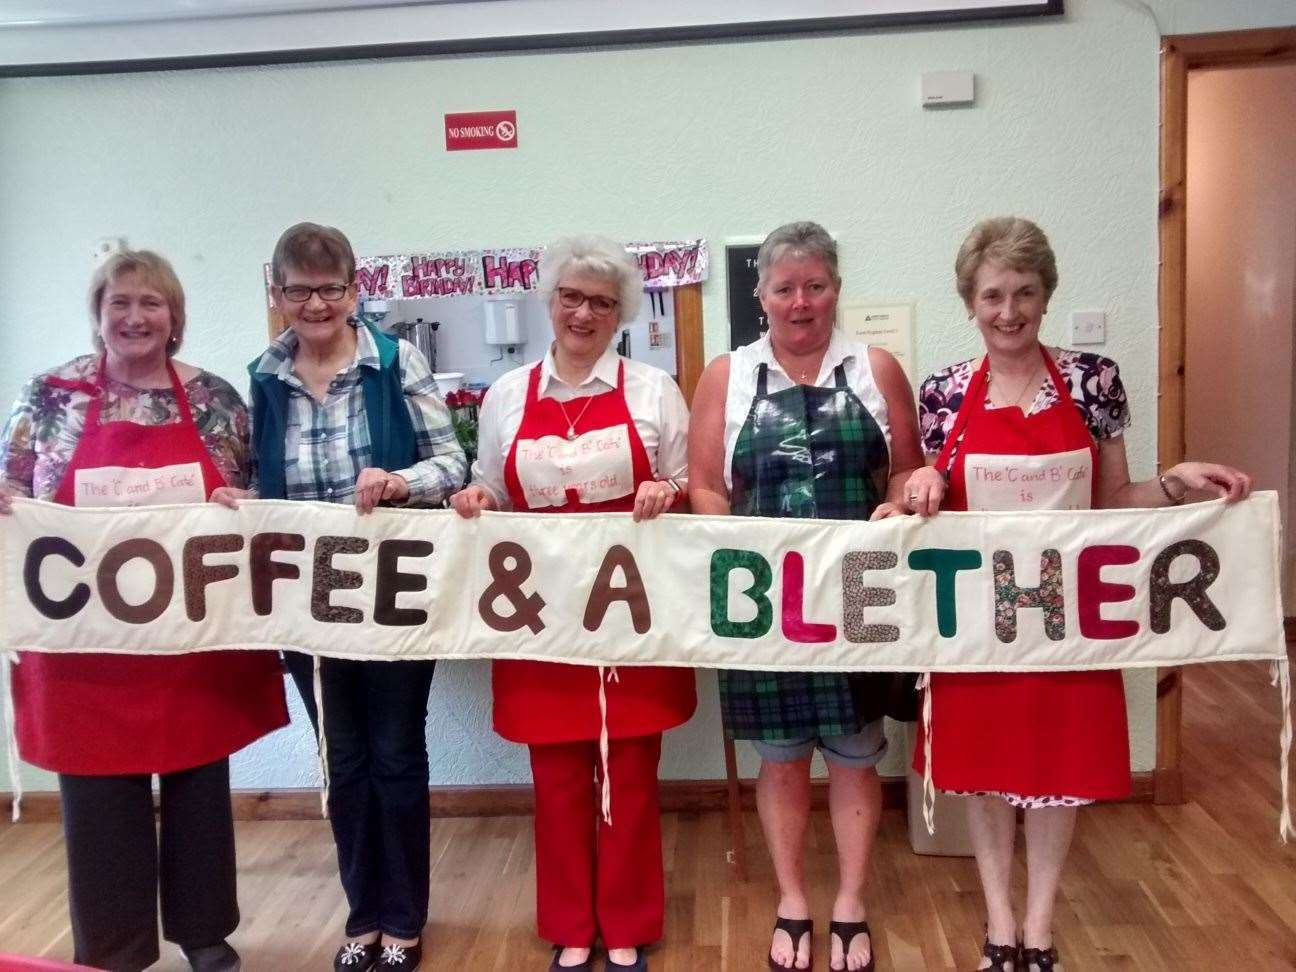 Voluteers, from left, Maureen Young, Carol Grant, Madeleine Seaby and Maggie Jamieson and Monica MacLean. Another volunteer, Diane Hull, was behind the camera.